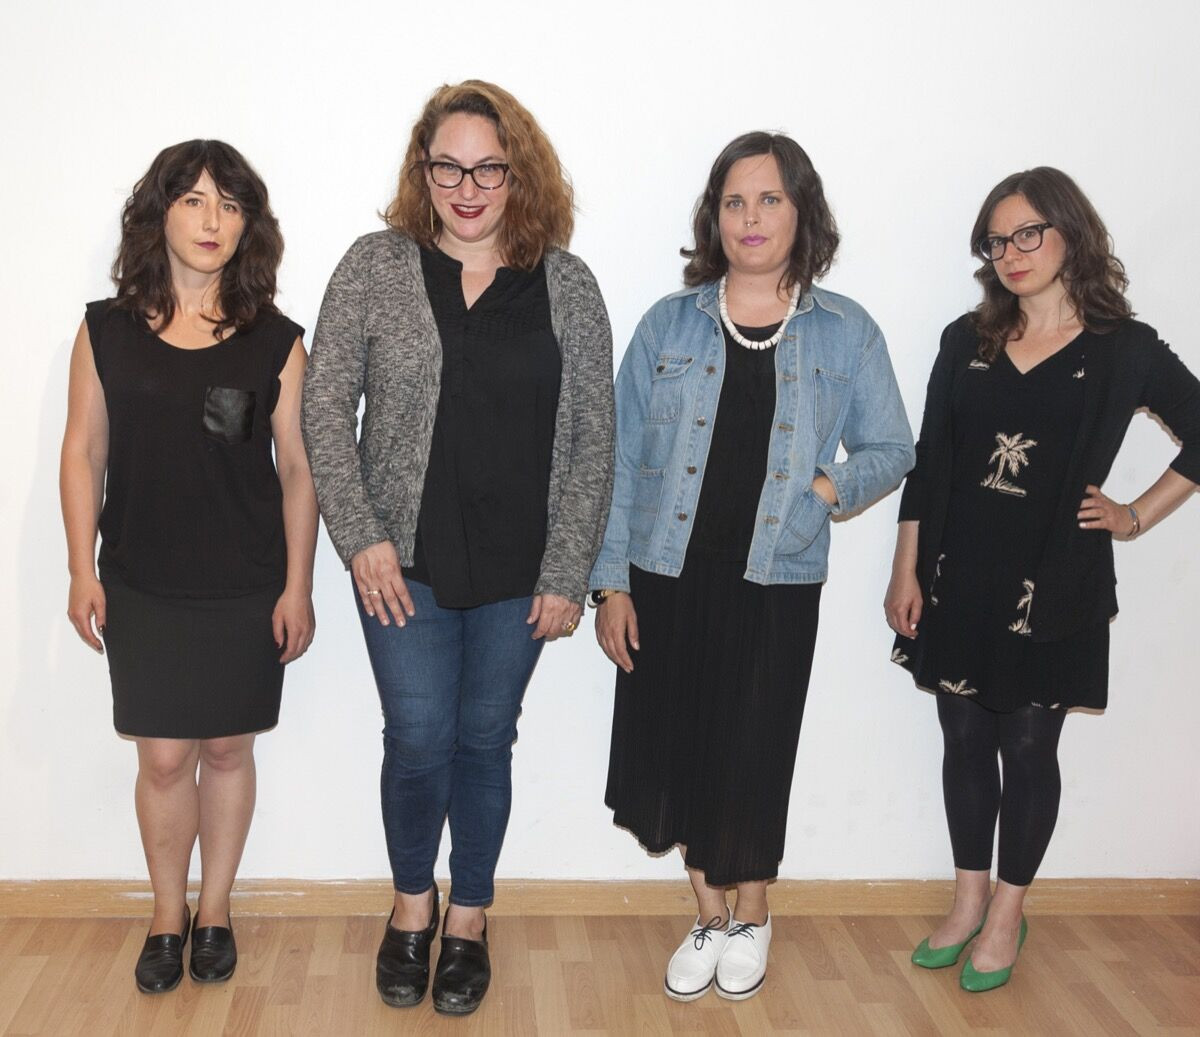 Sarah Thibault, Elizabeth Bernstein, Dana Hemenway, and Zoë Taleporos. Photo courtesy of Royal NoneSuch Gallery.